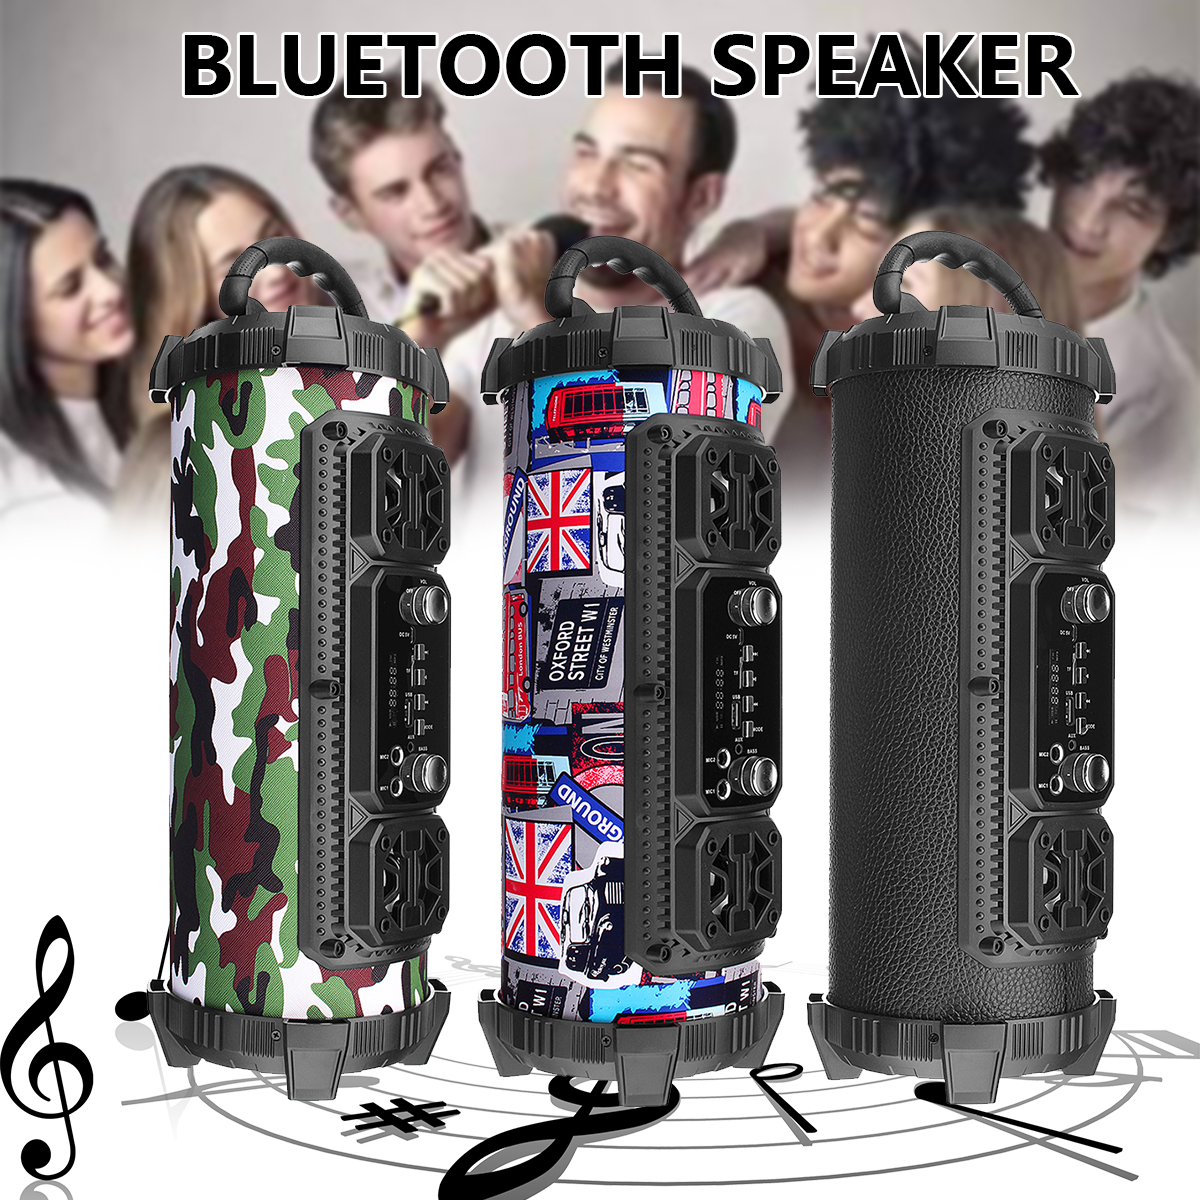 20W Portable Sports Wireless Bluetooth Stereo Subwoofer Speaker Hip Pop Support Microphones Adjustable Bass Outdoor Loundspeaker hip hop portable wireless bluetooth speaker black